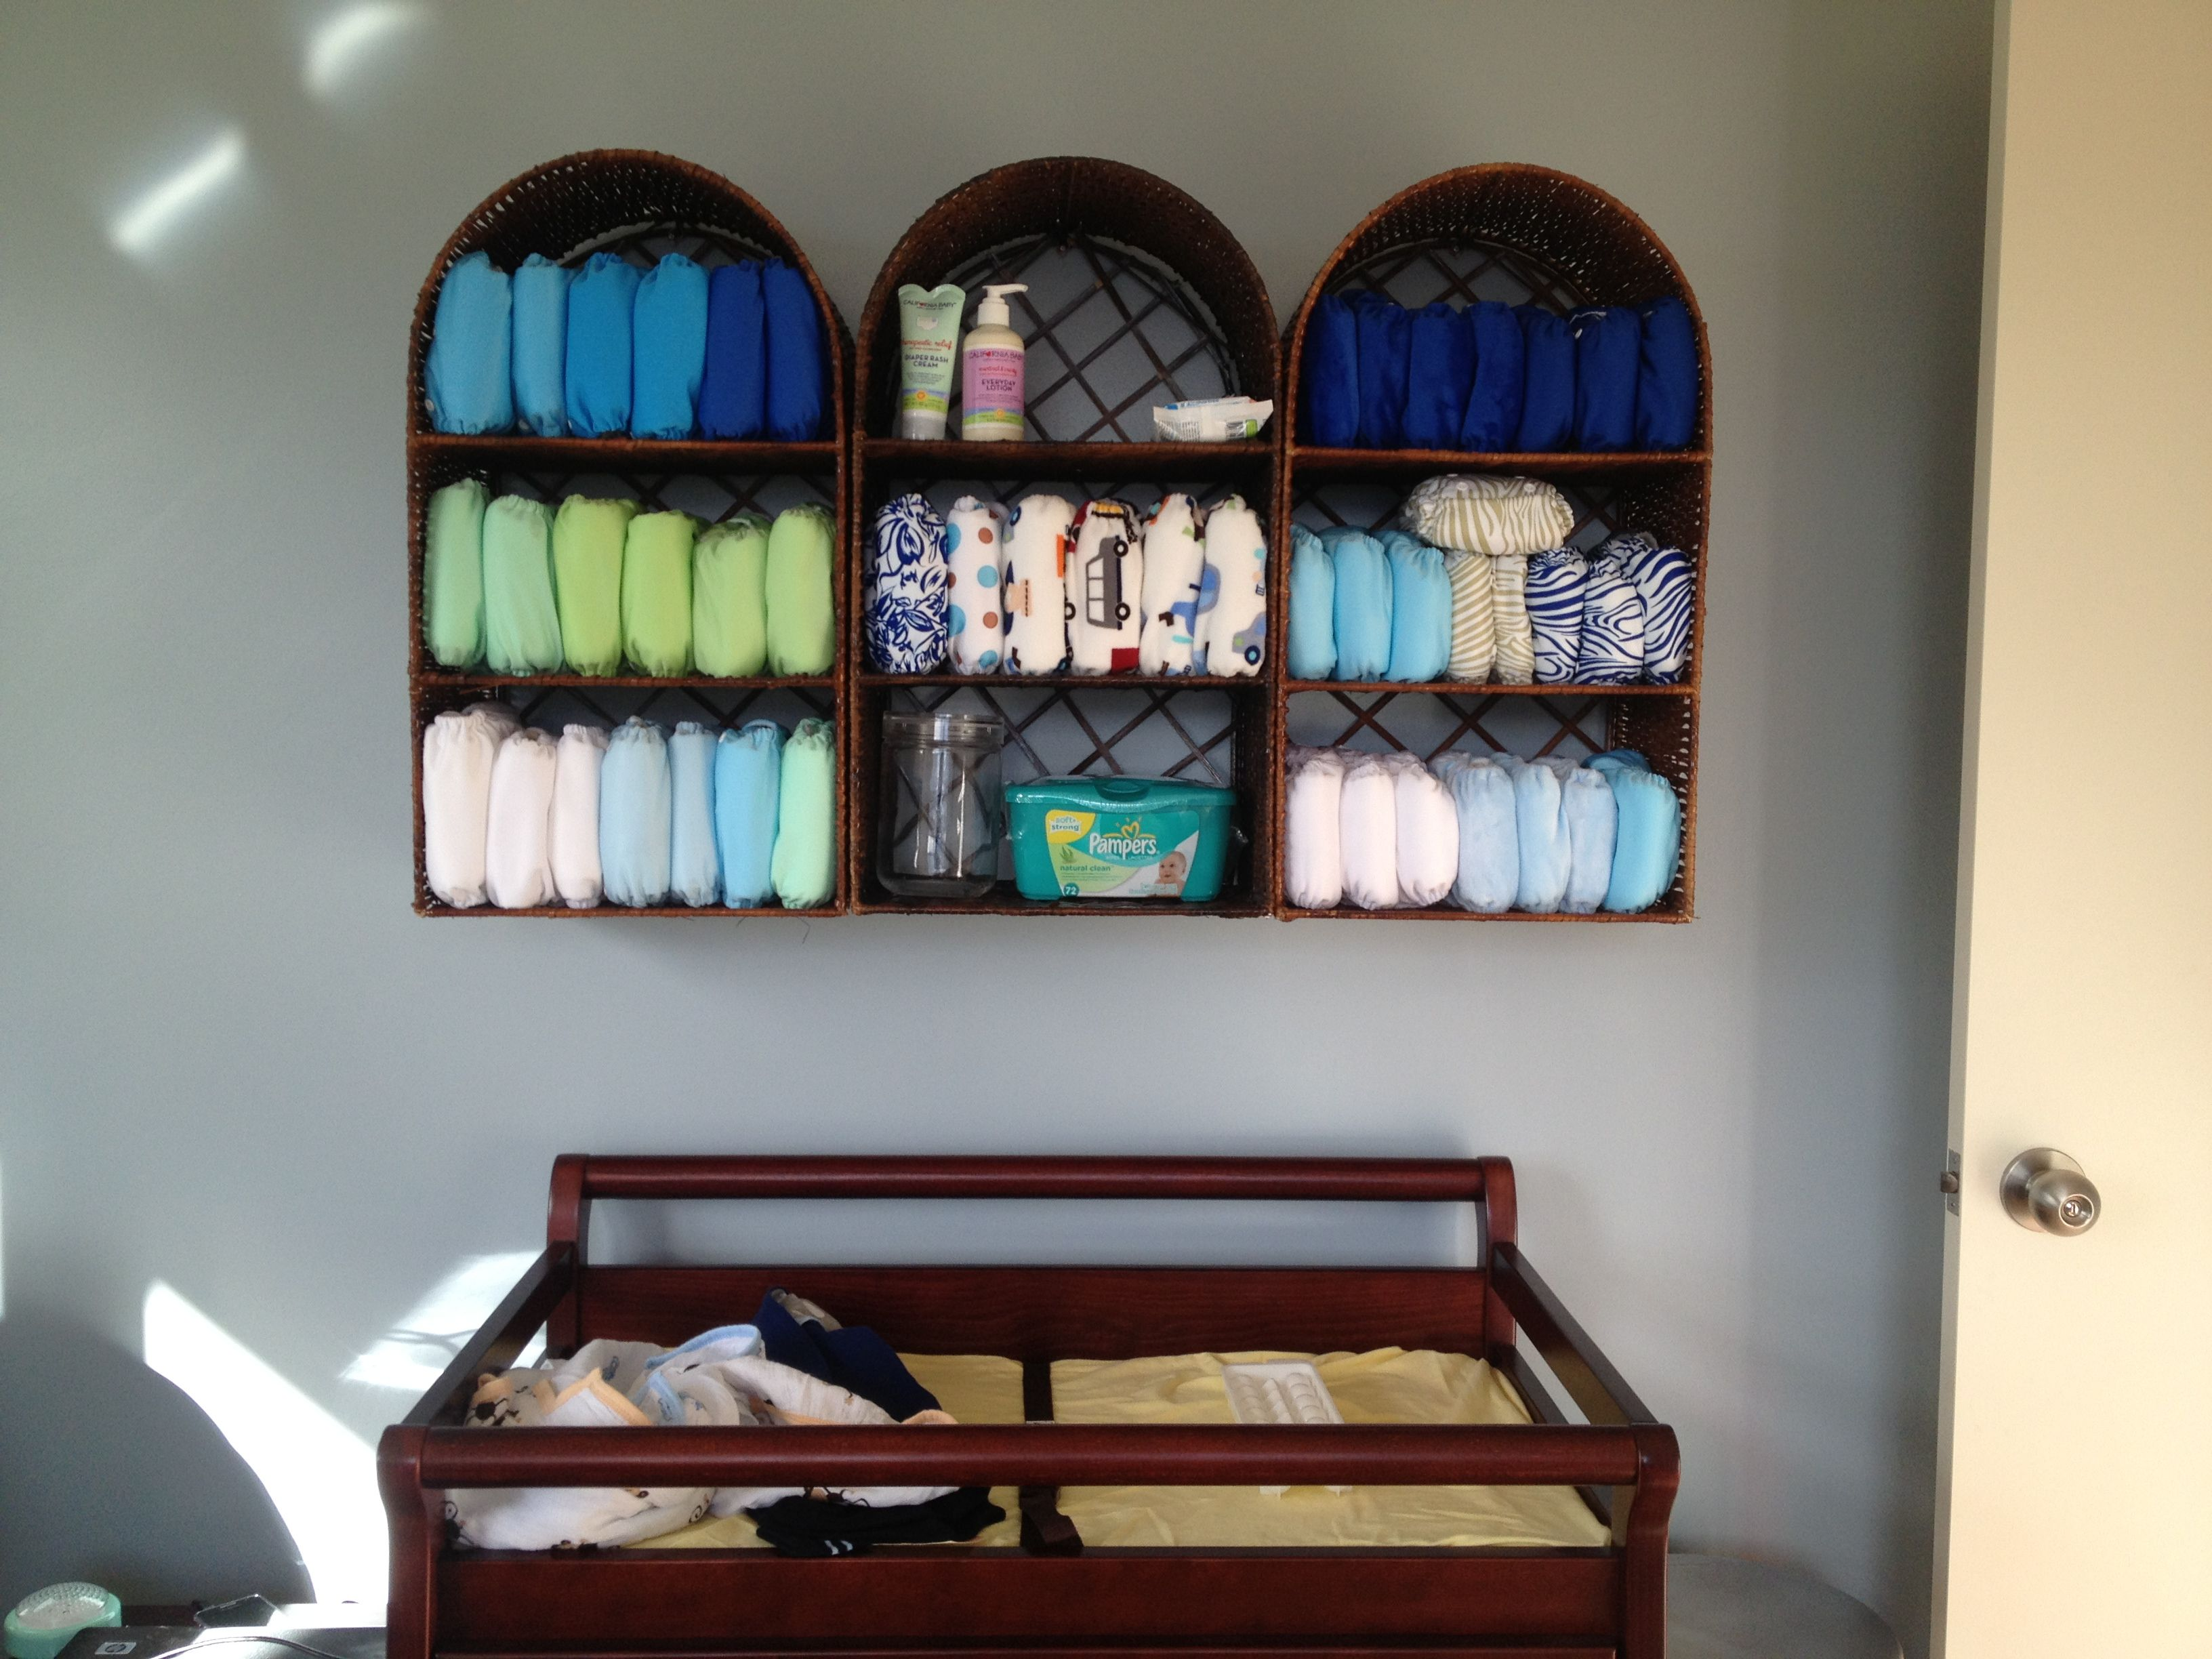 9 Wall Storage Ideas That You Need To Try: Best 25+ Cloth Diaper Storage Ideas On Pinterest